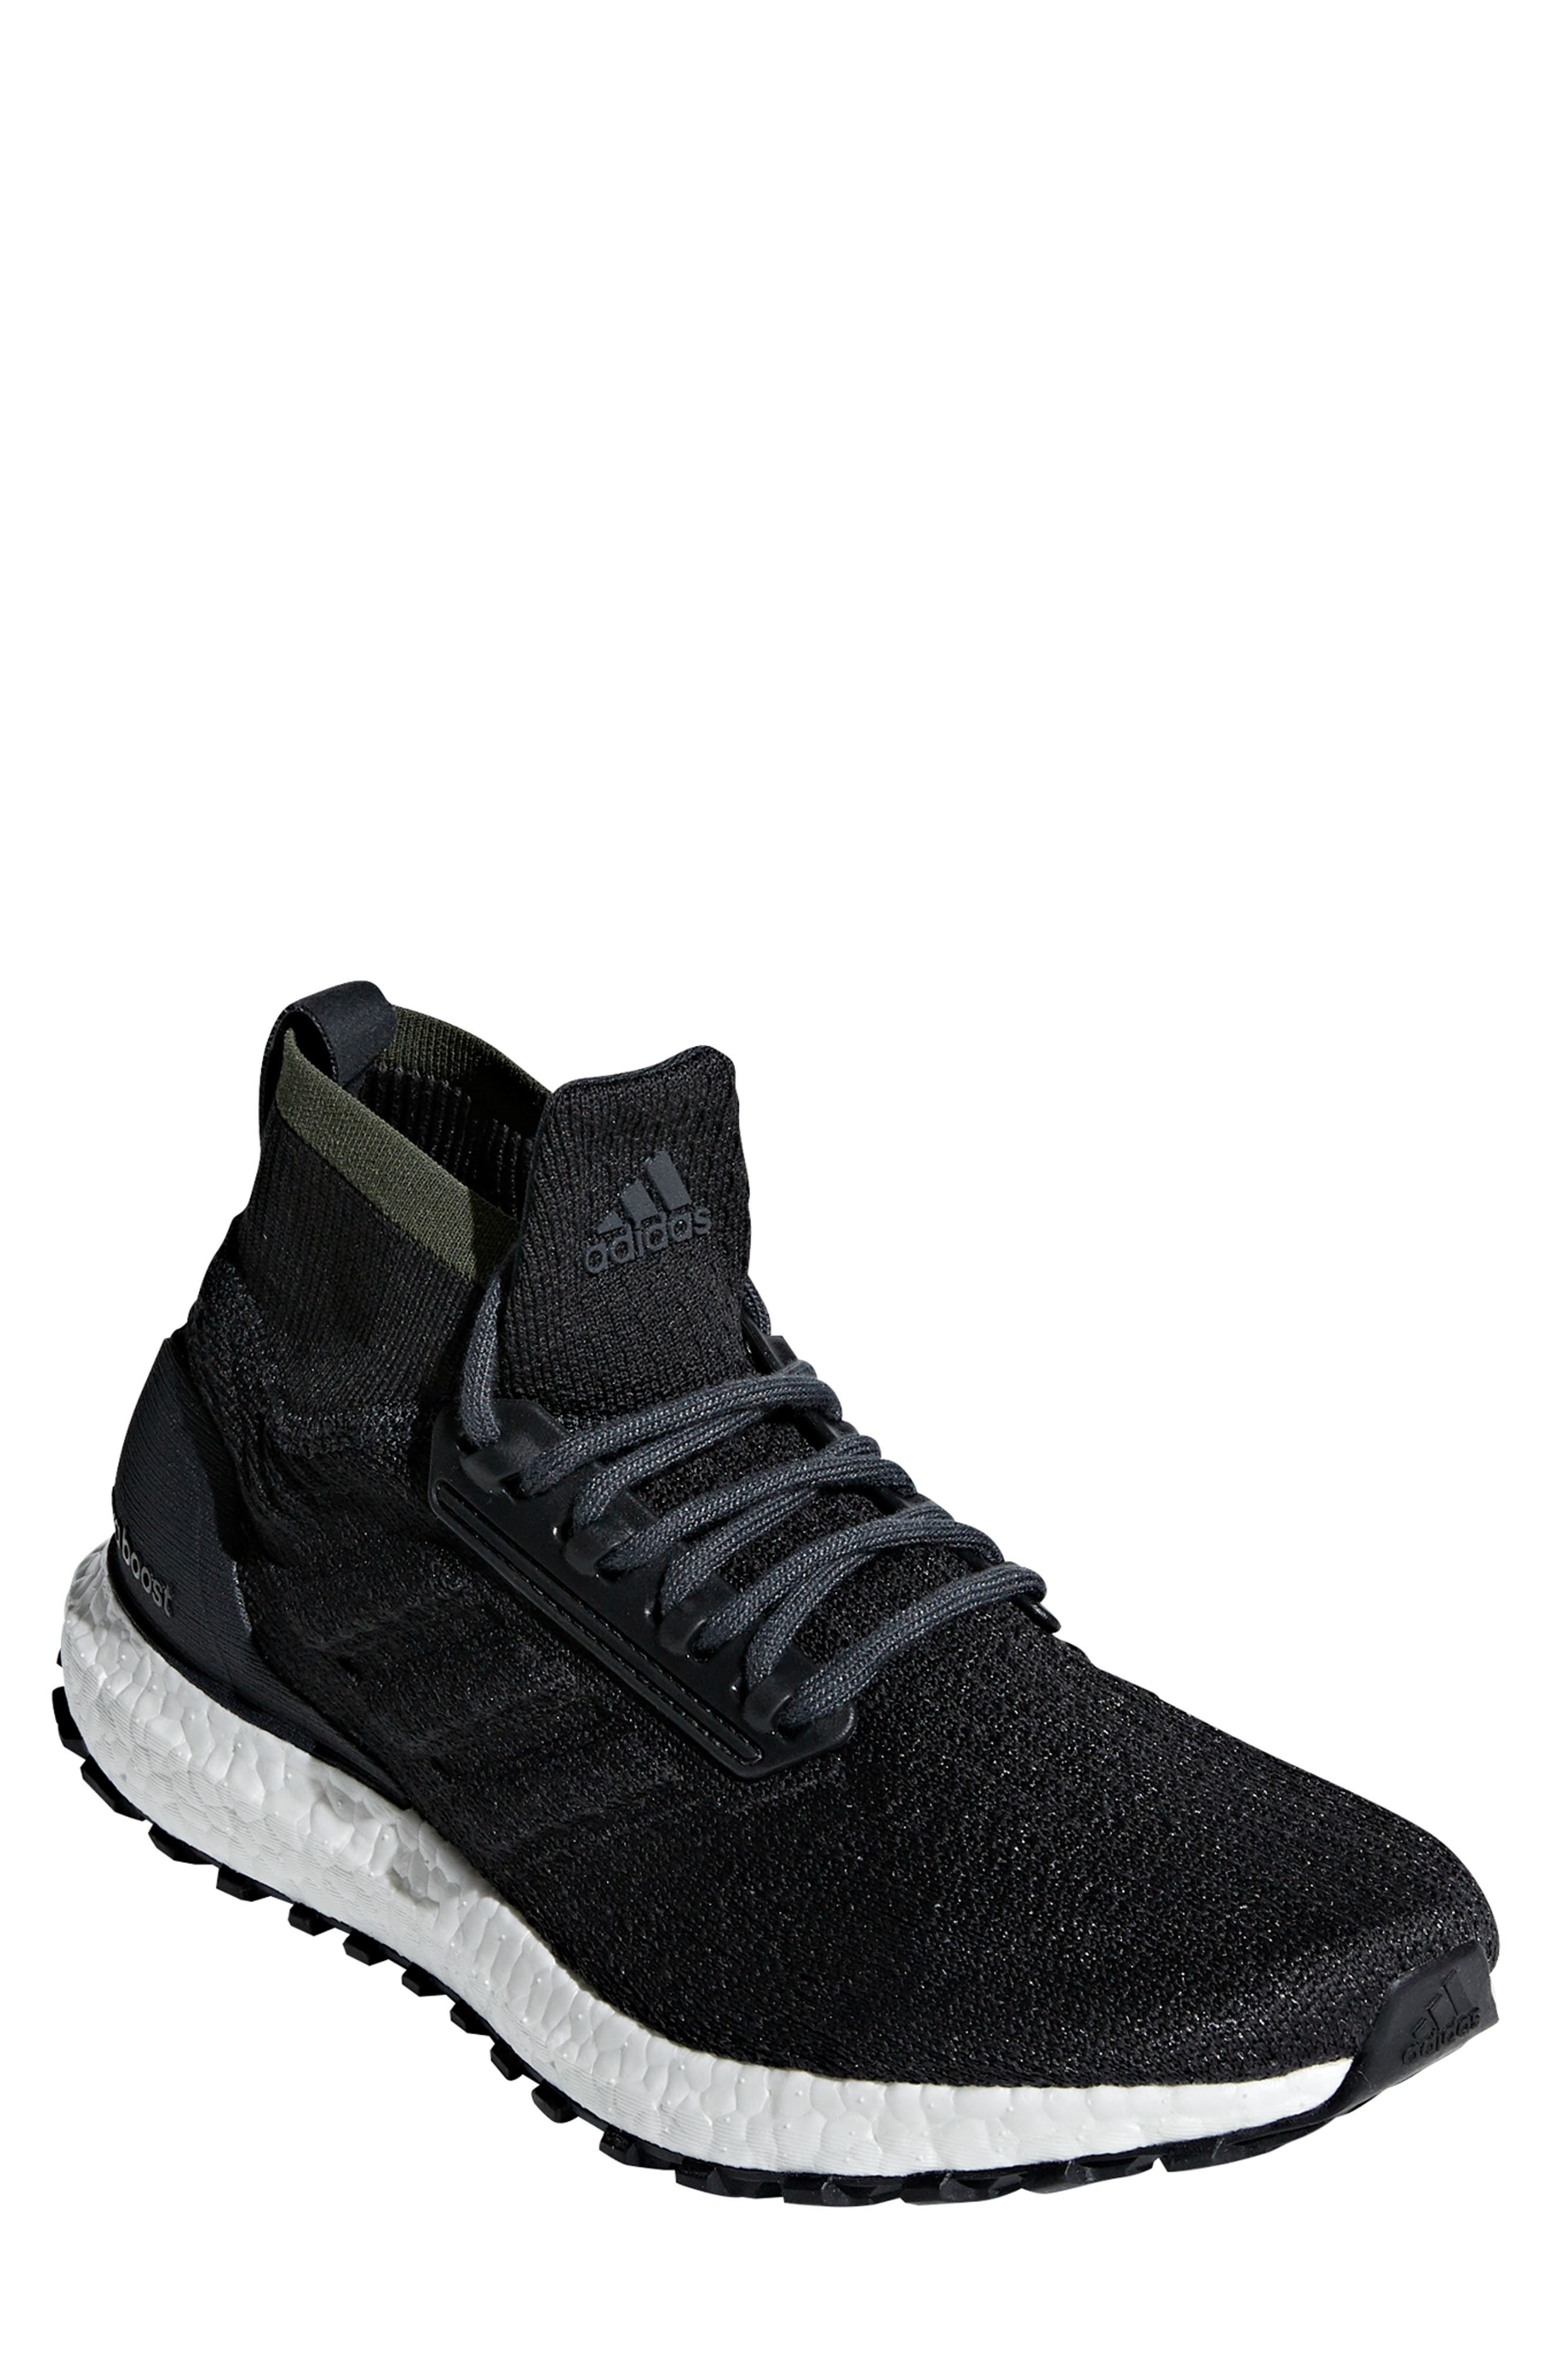 UltraBoost All Terrain Water Resistant Running Shoe,                         Main,                         color, CARBON / CORE BLACK / WHITE